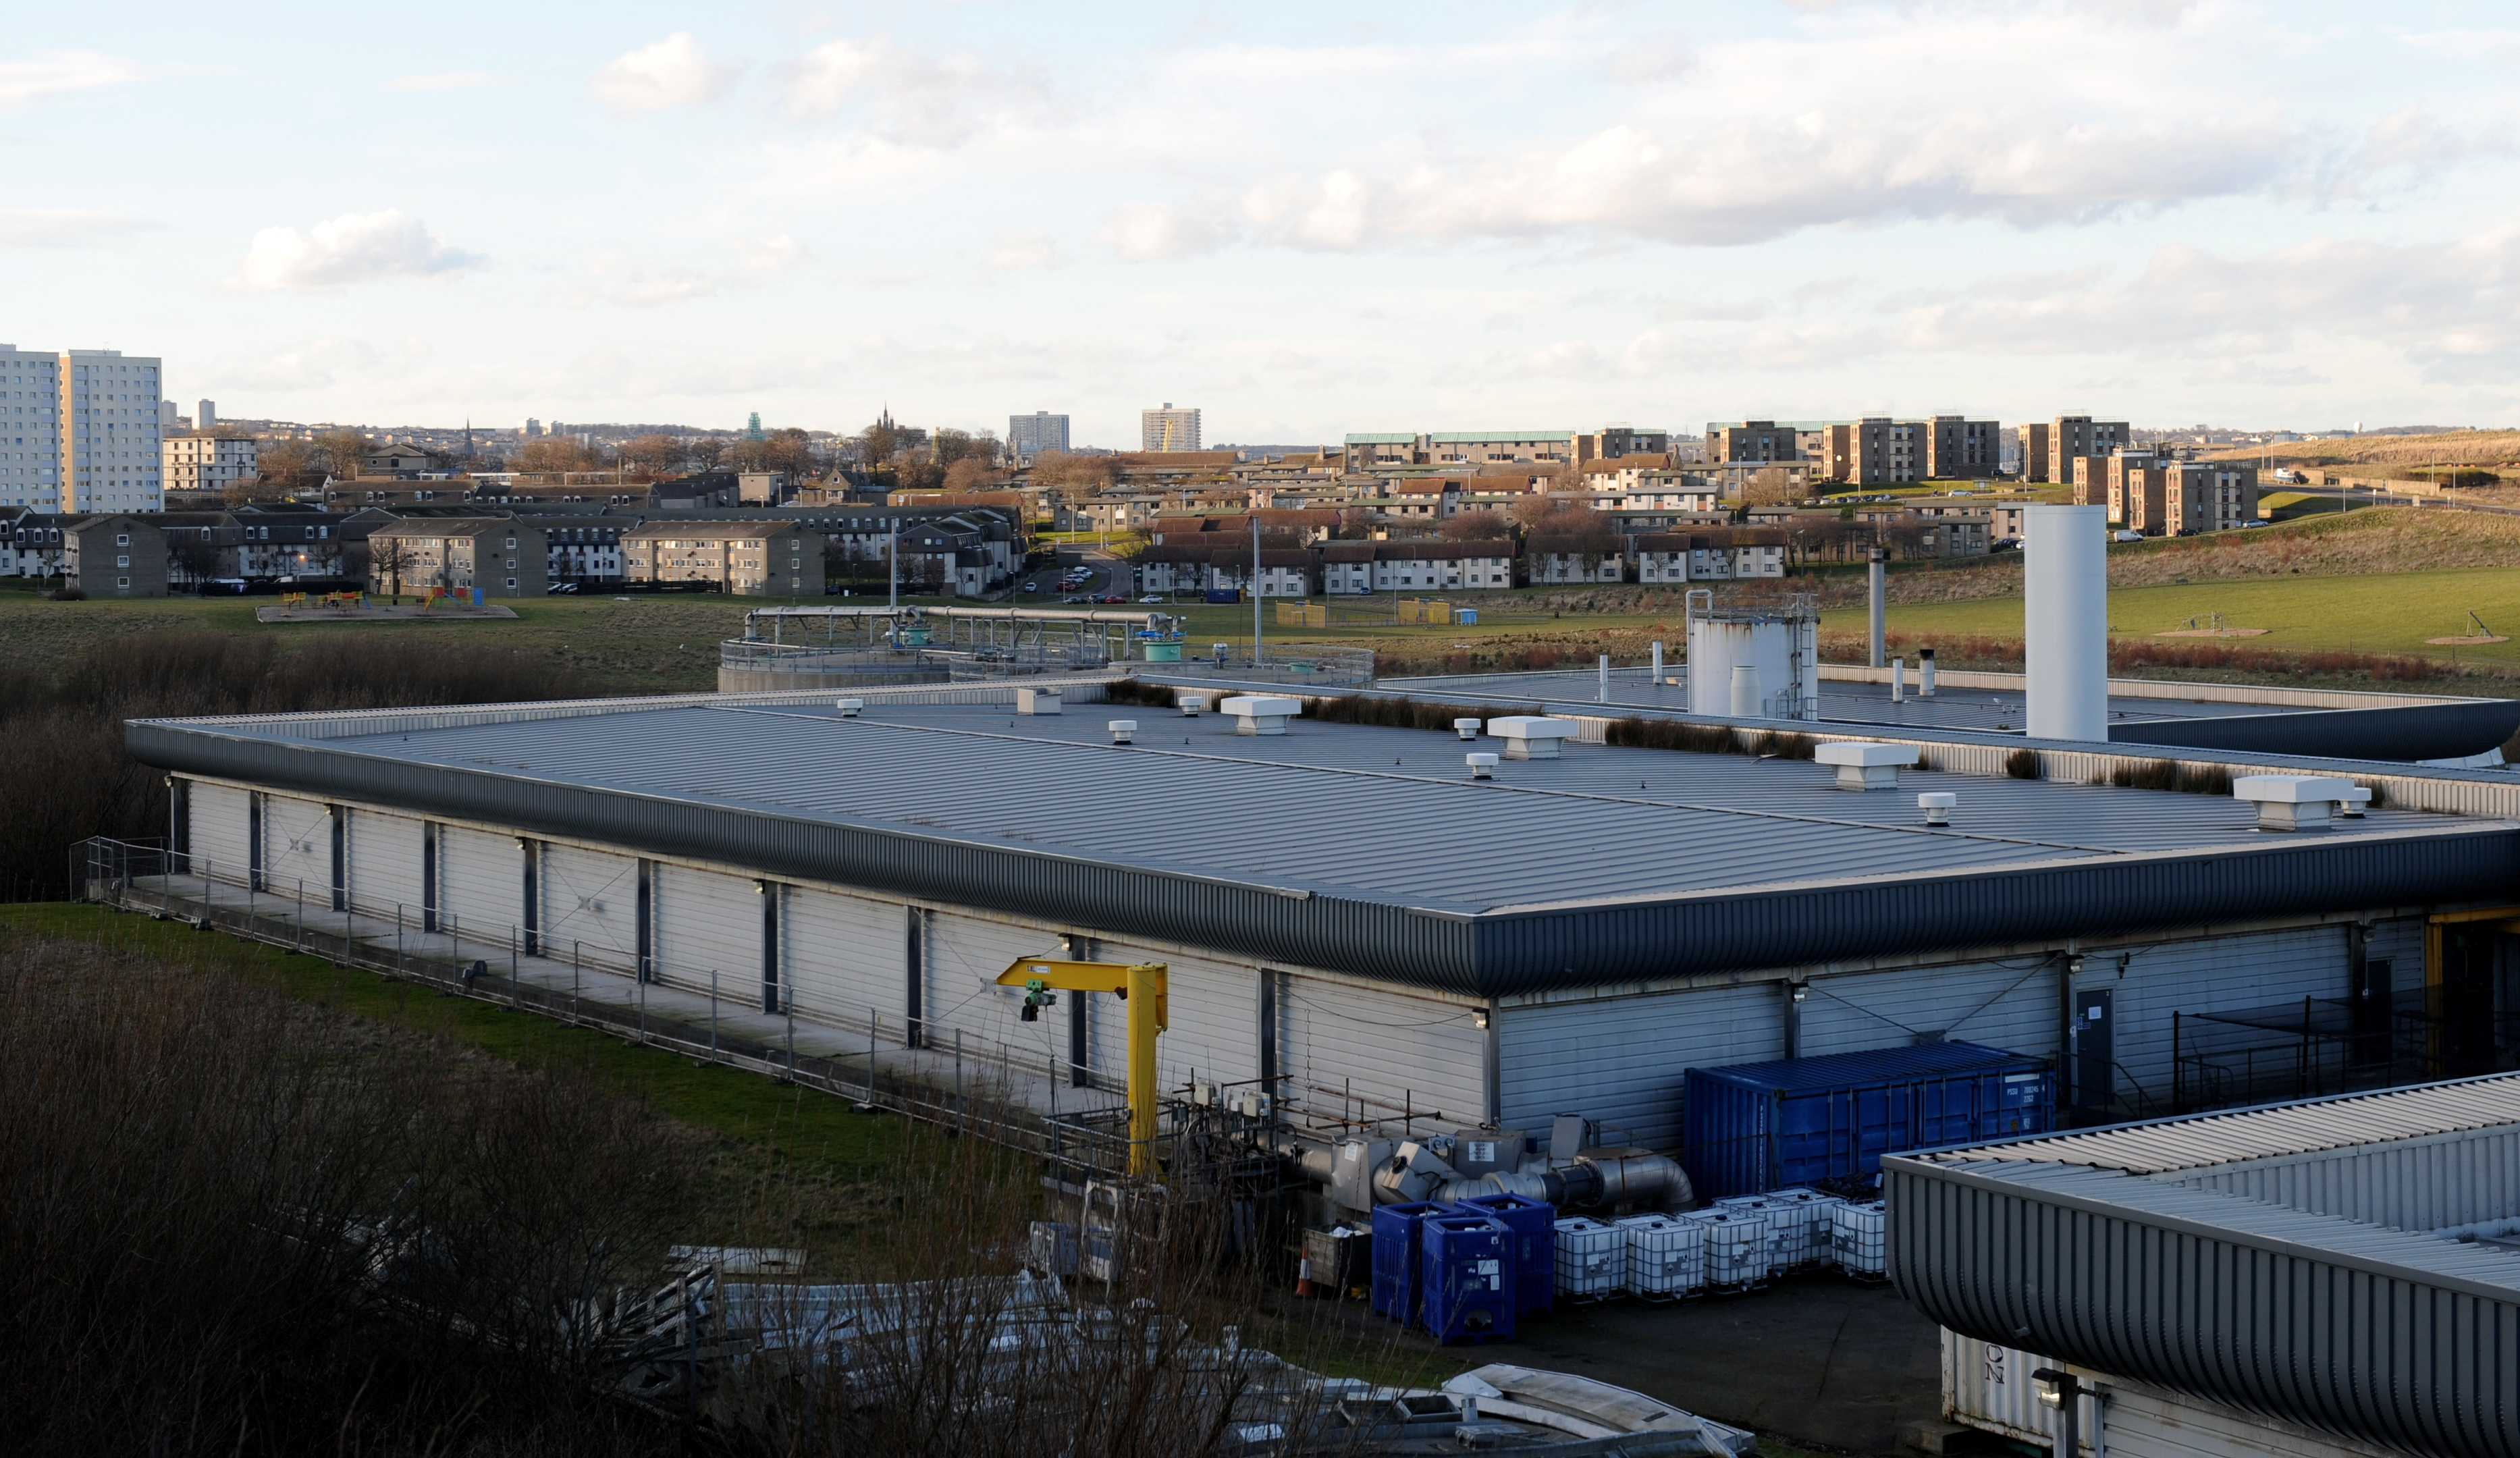 Nigg Waste Water Plant in Torry is undergoing 'millions of pounds' of work.